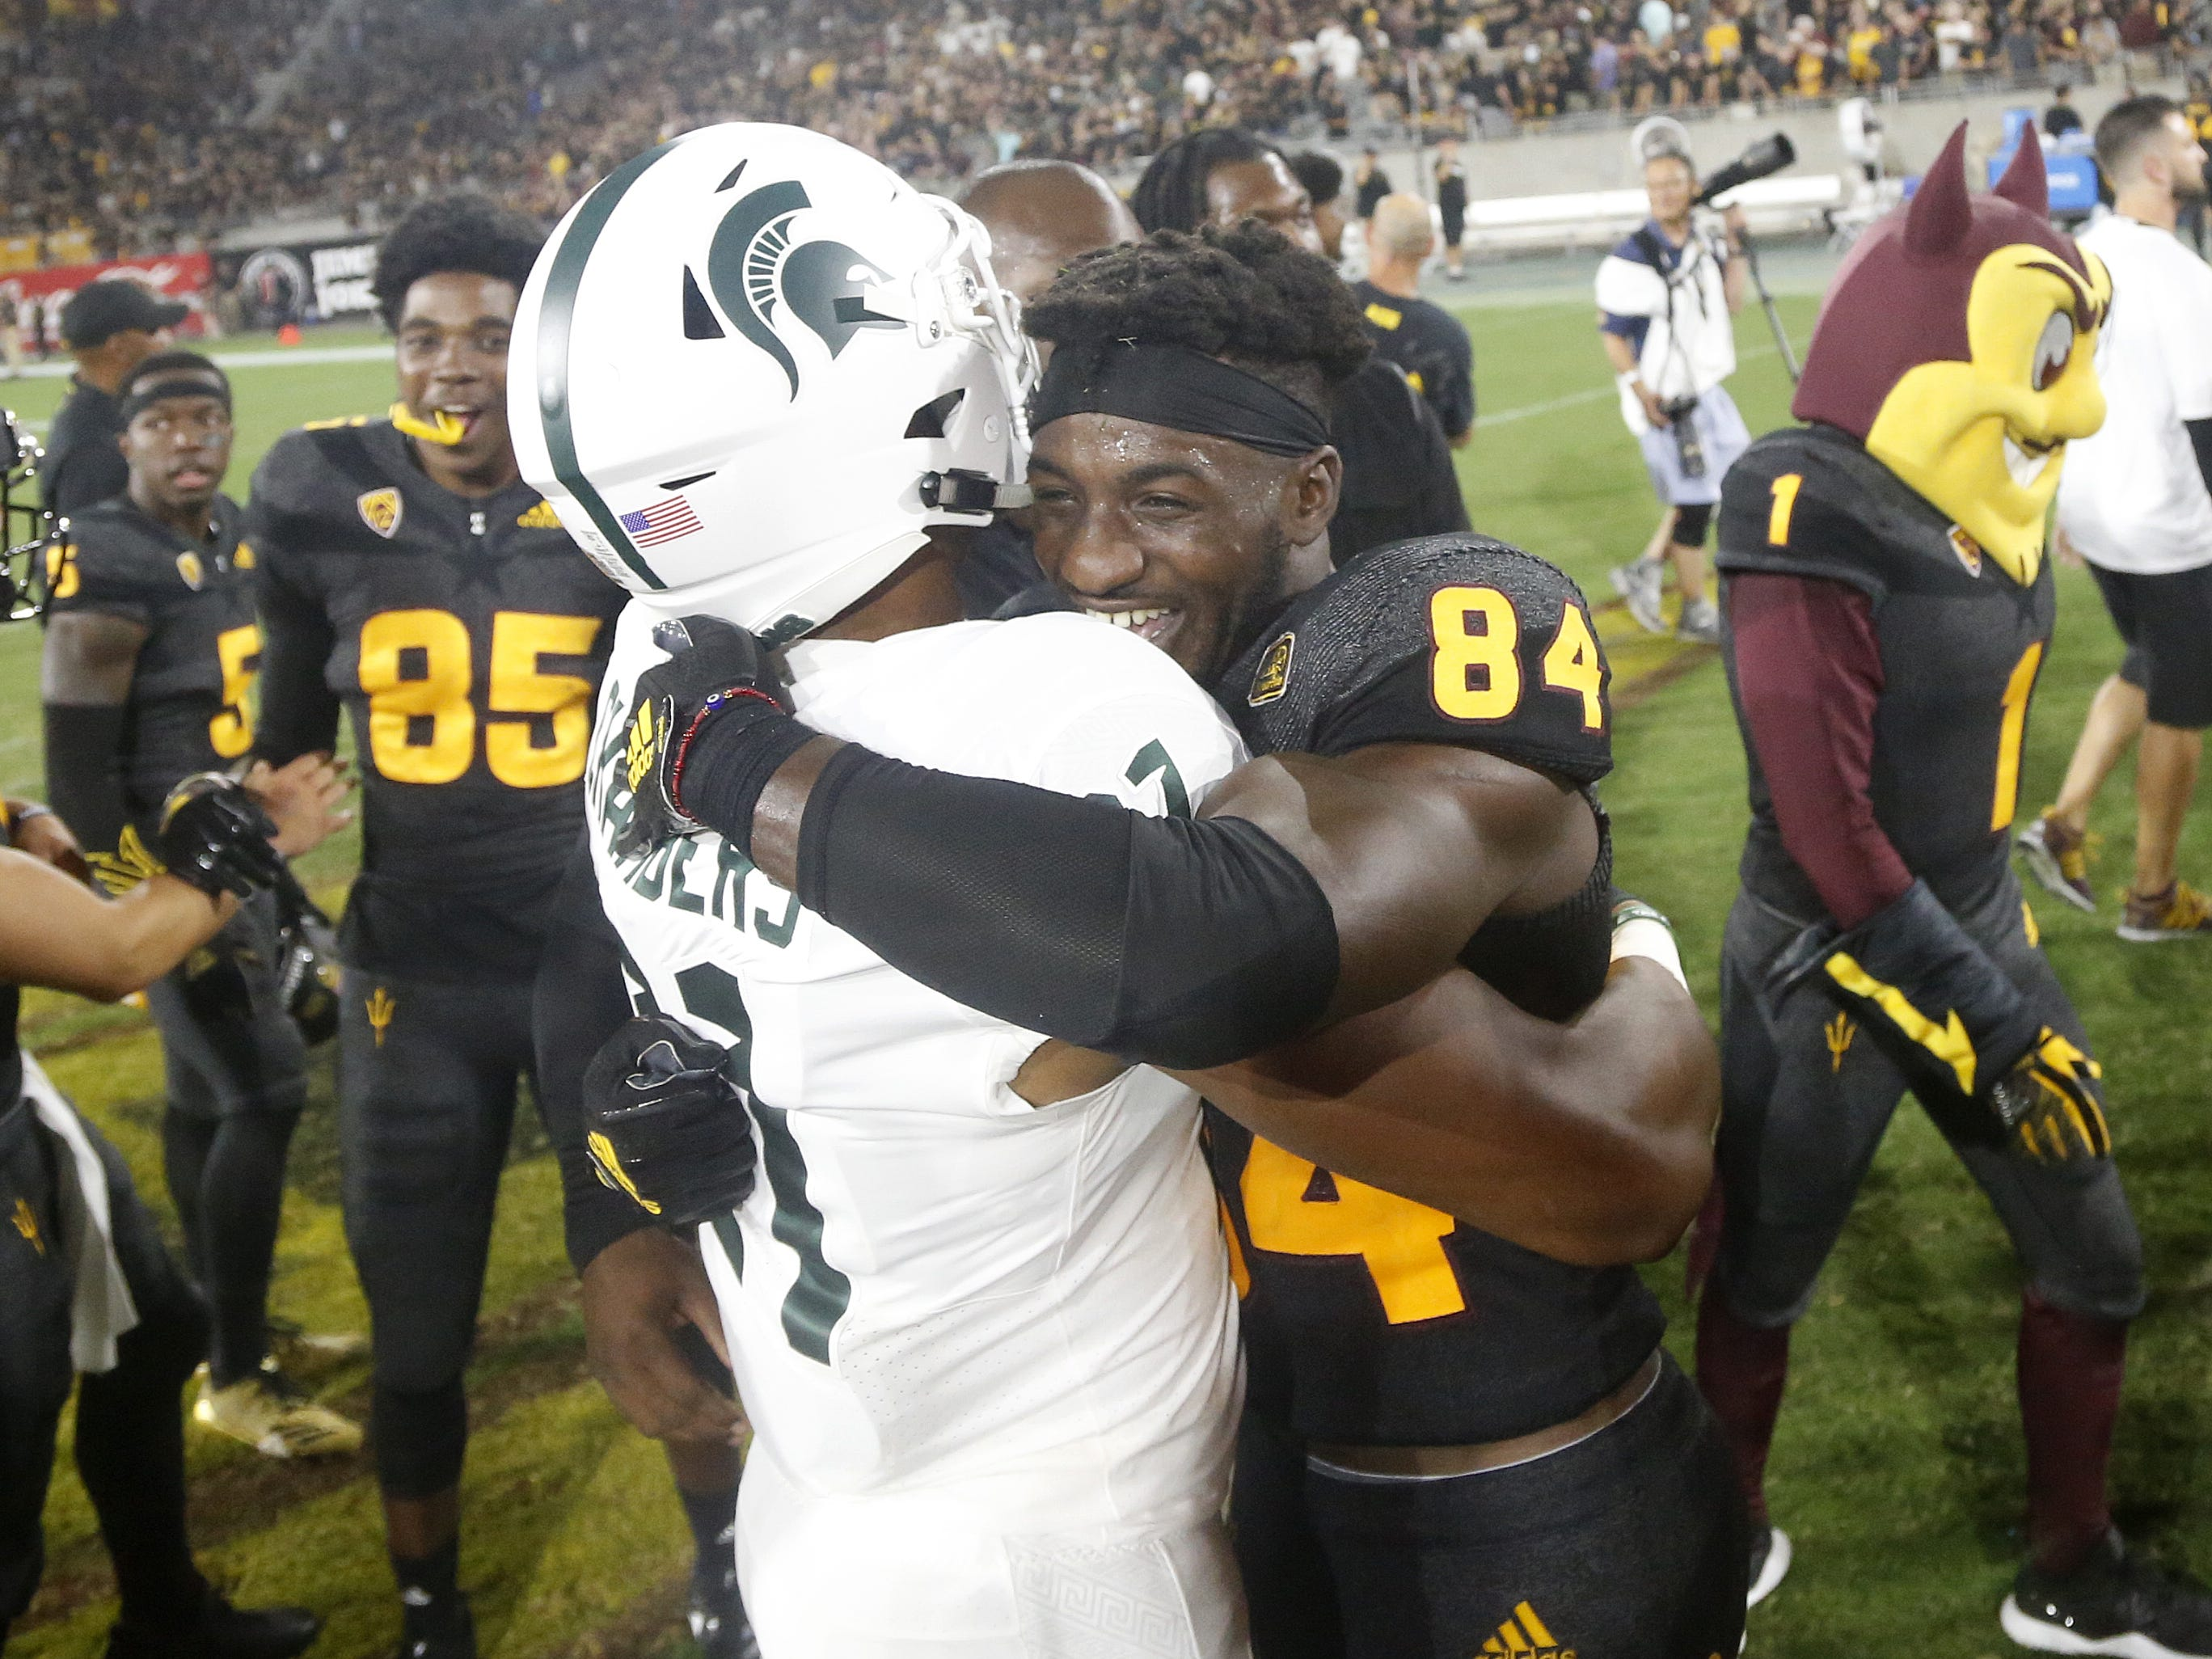 Arizona State Sun Devils wide receiver Frank Darby (84) high-fives Cam Chambers after ASU defeat Michigan State 16-13 at Sun Devil Stadium in Tempe, Ariz. on Sept. 8, 2018.